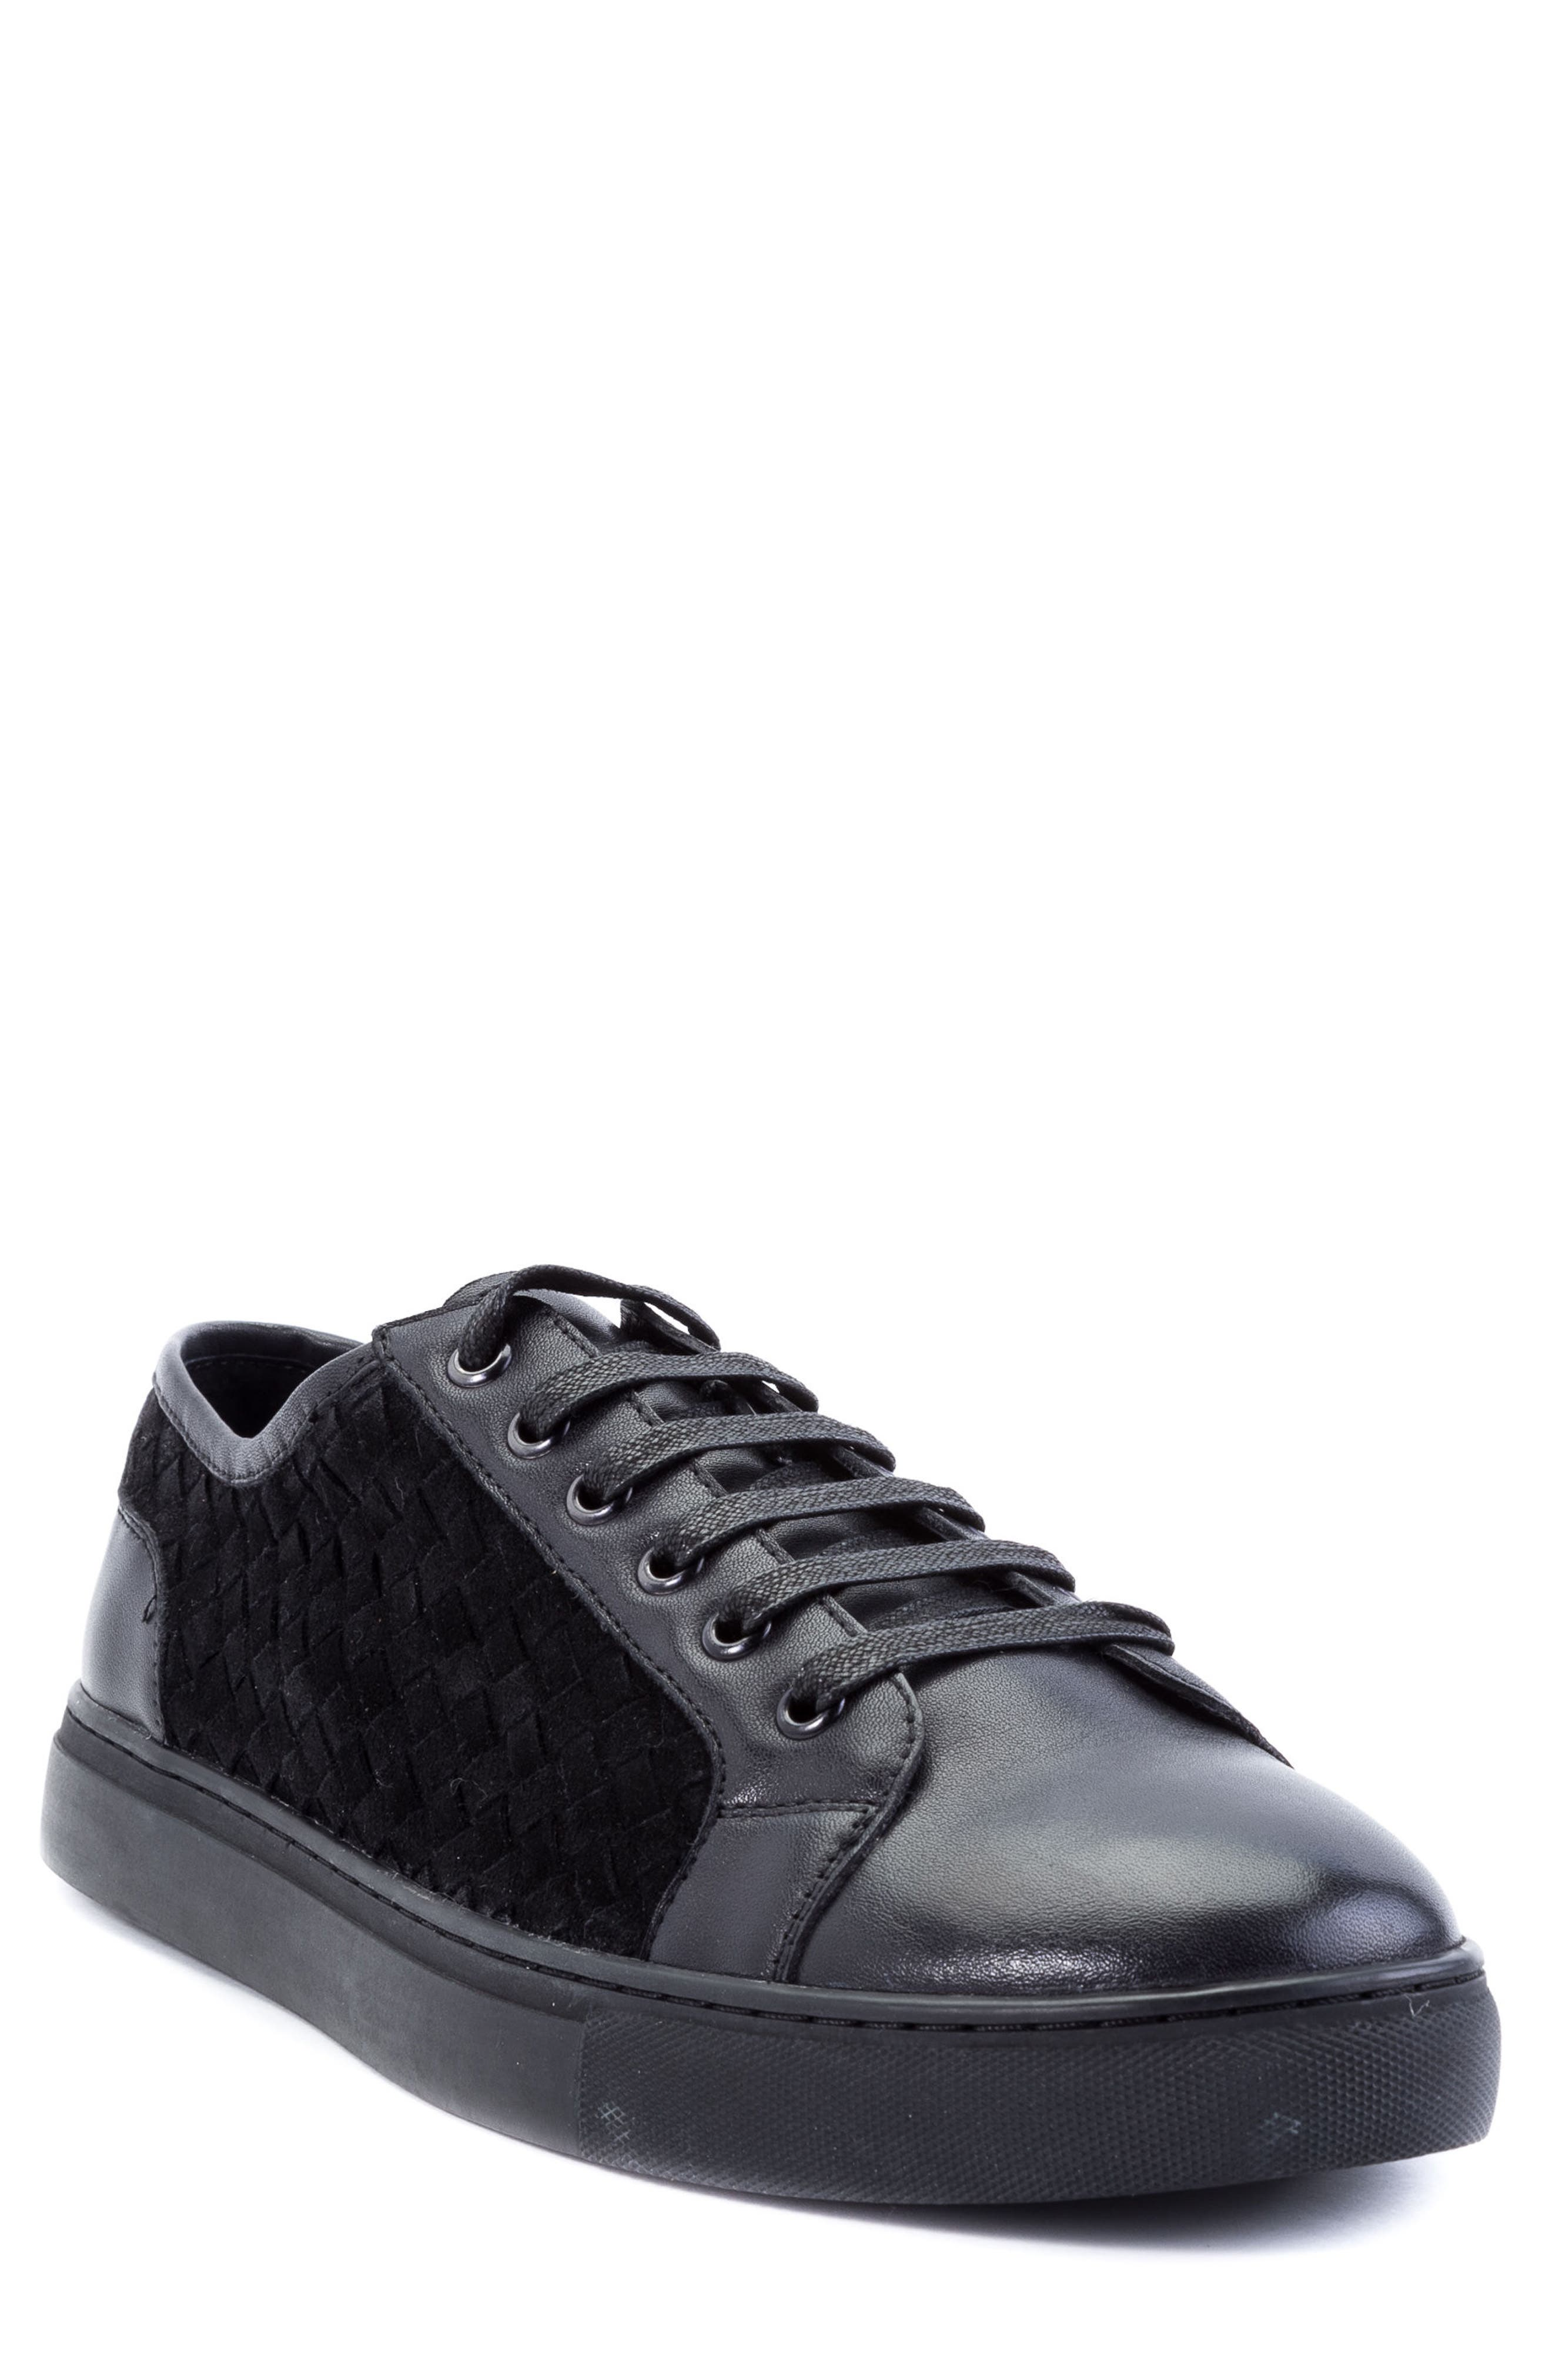 Player Woven Low Top Sneaker,                         Main,                         color, BLACK LEATHER/ SUEDE